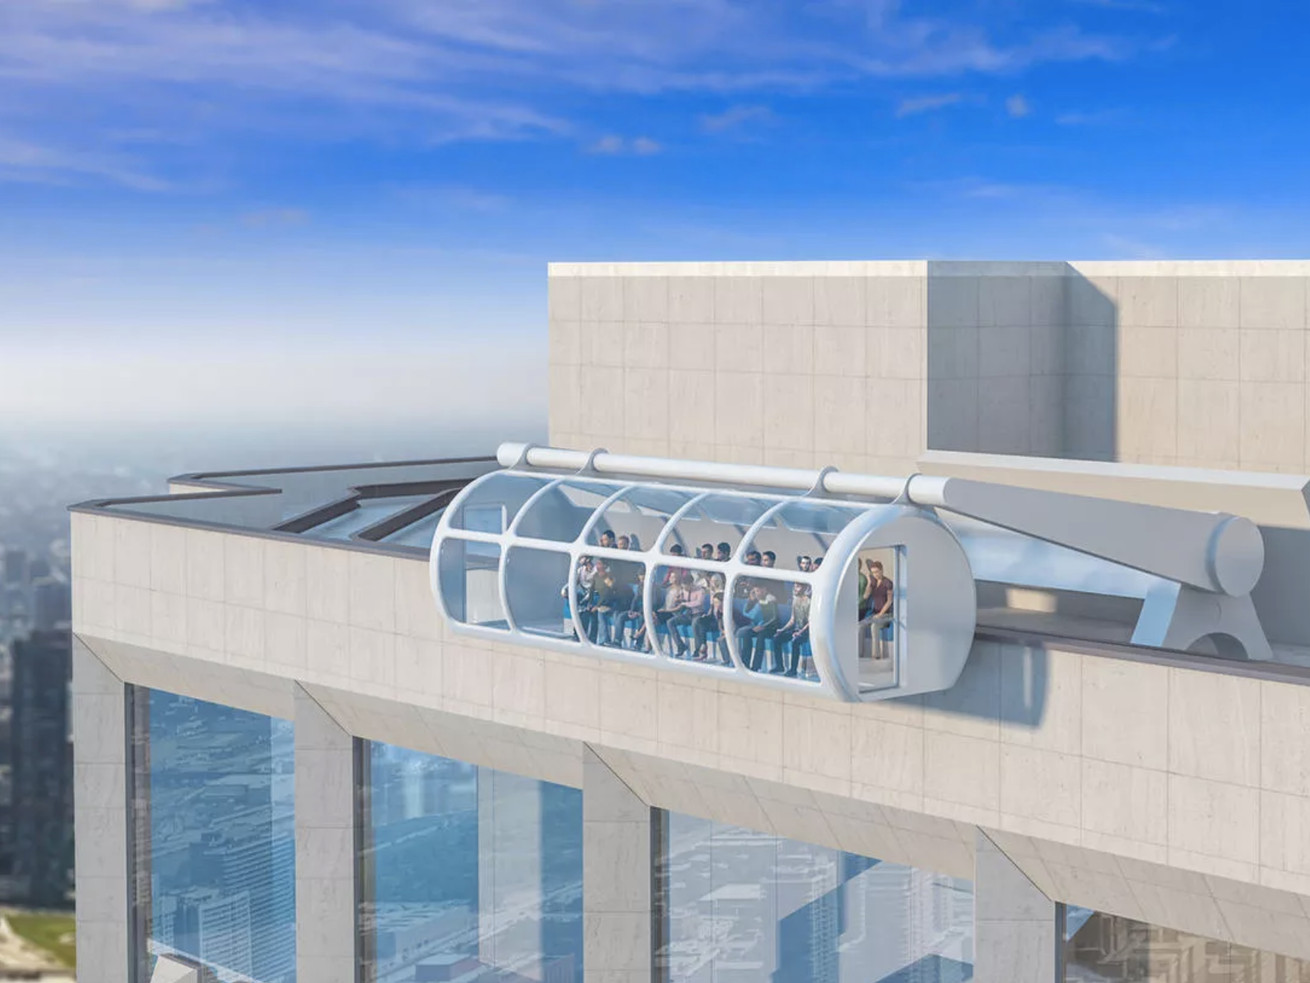 """The """"Sky Summit"""" ride would dangle tourists over the edge of the Aon Center's roof."""